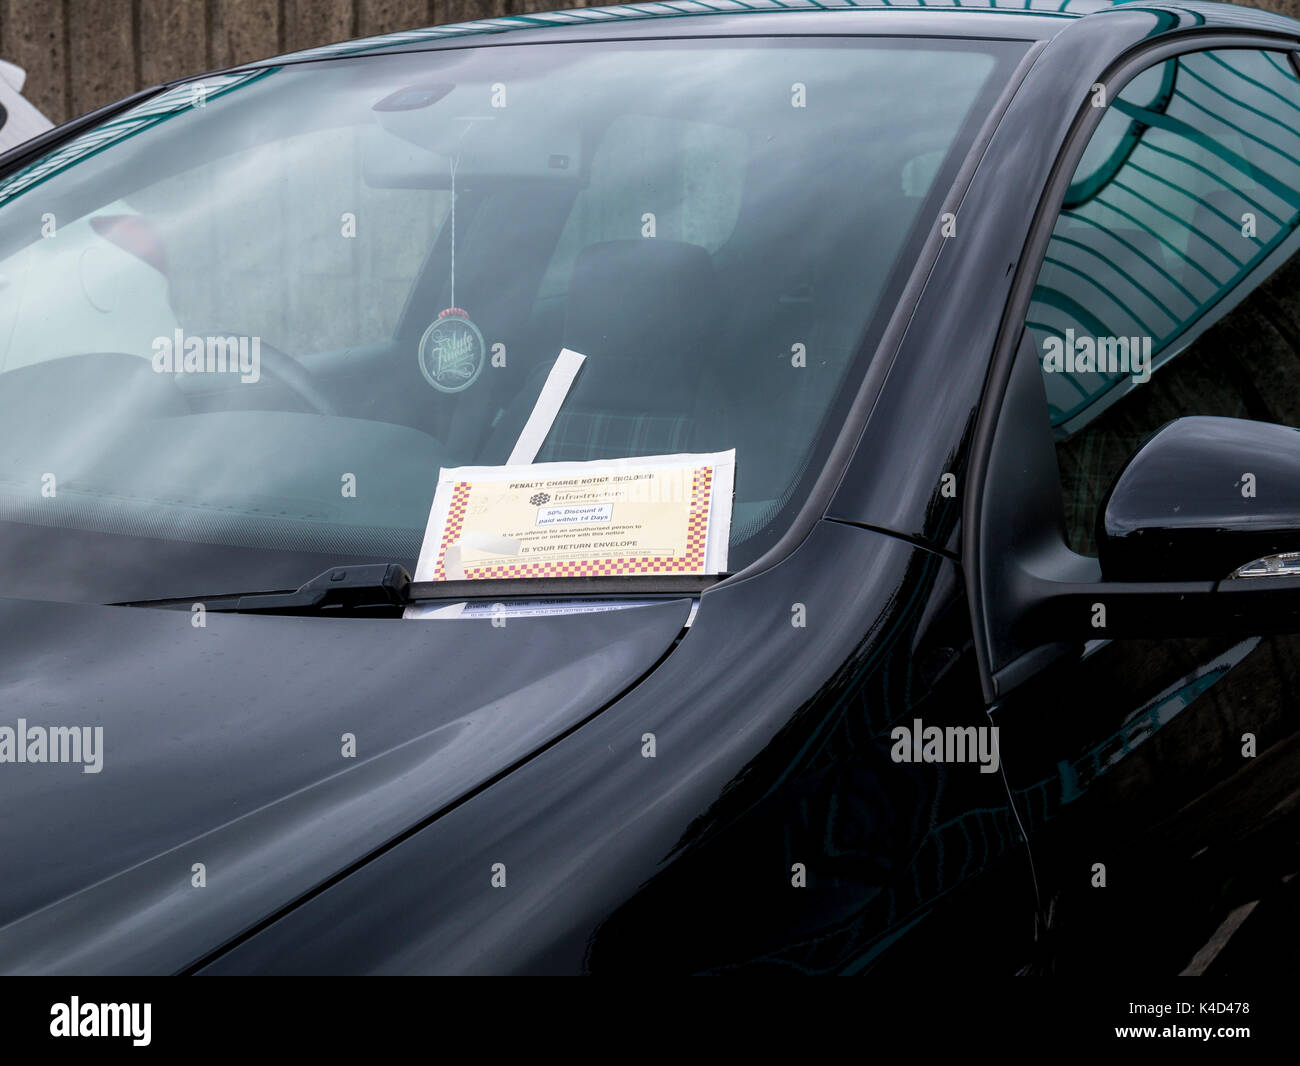 Penalty Charge Notice or Parking Ticket on the windscreen of a car - Stock Image